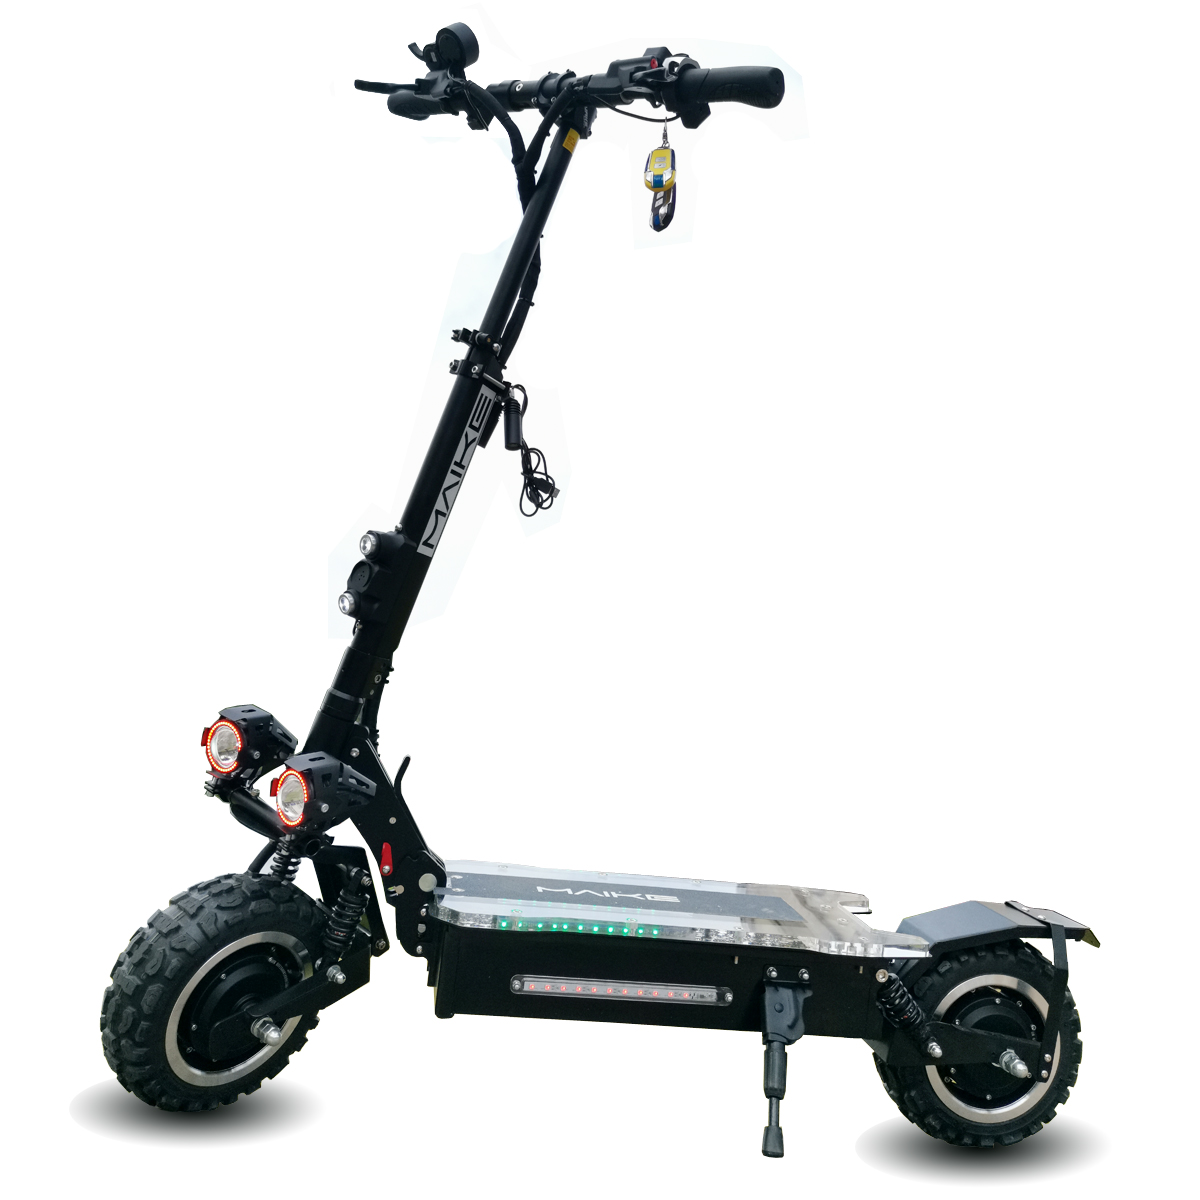 11 Inch 1600W*2 Dual Motor Electric Mobility Scooter For Adults, Black